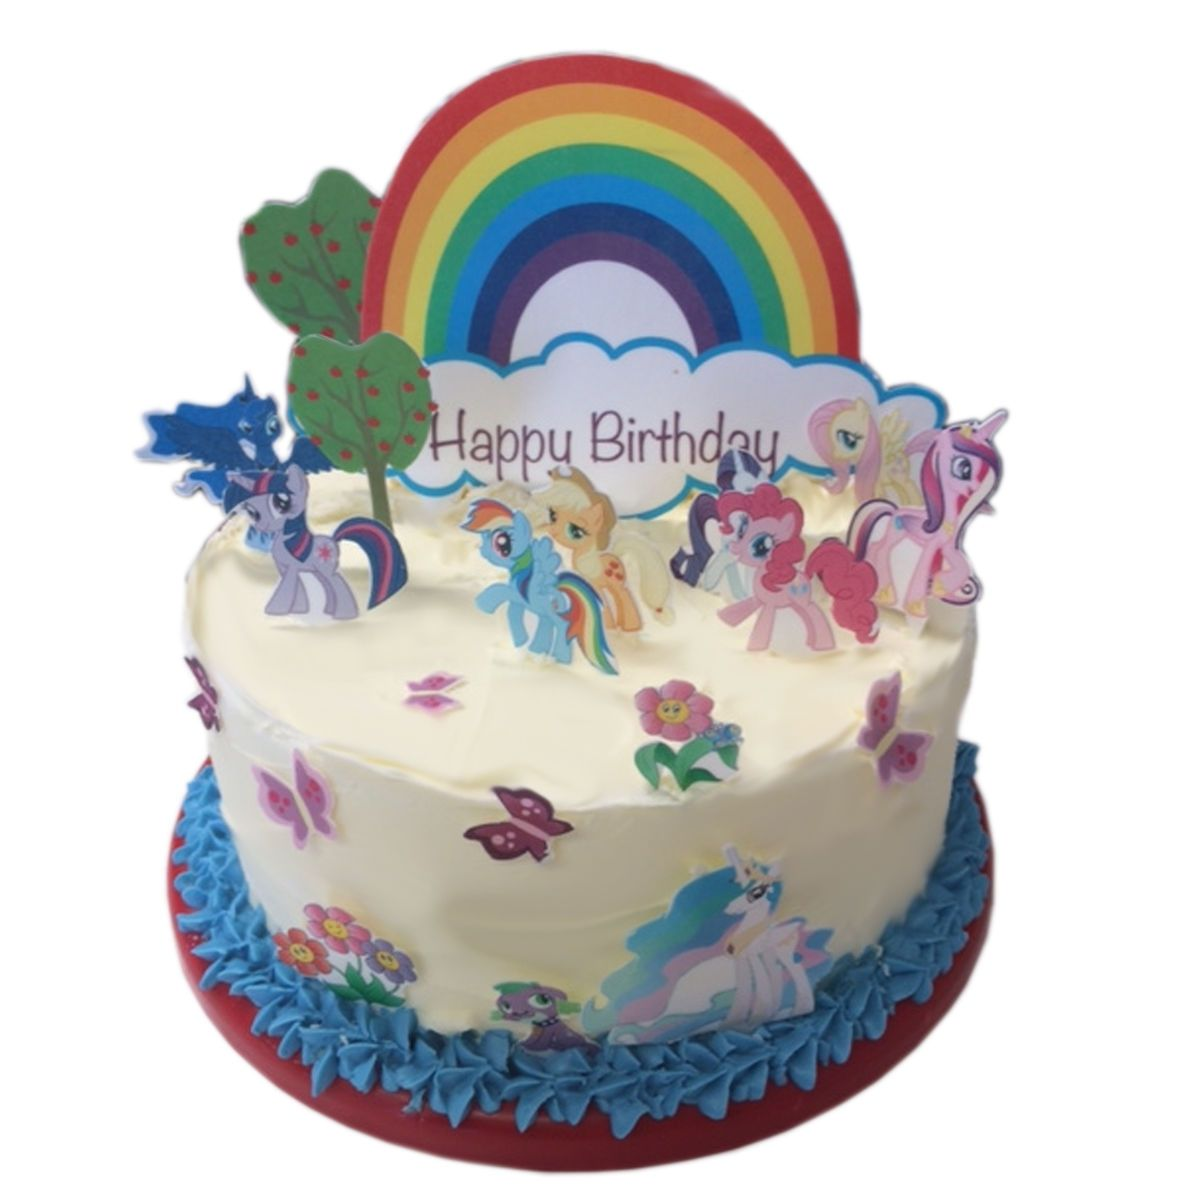 Cake Toppers Edible Uk : My Little Pony Edible Wafer Card Cake Topper Scene